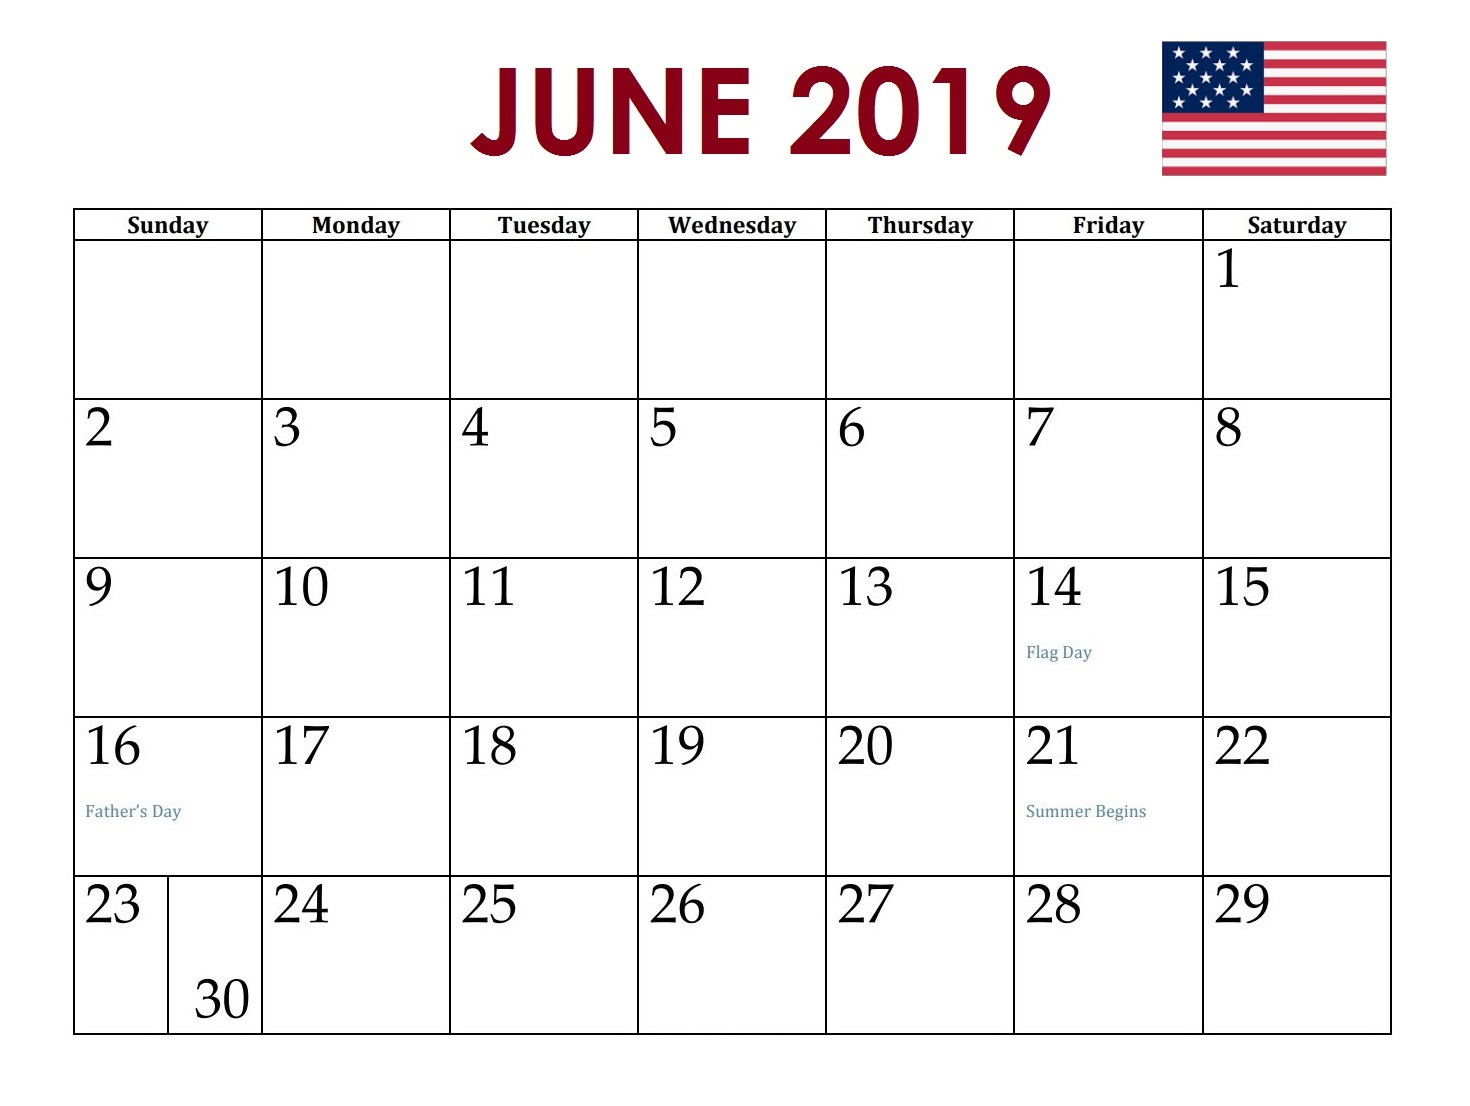 June 2019 USA Holidays Calendar